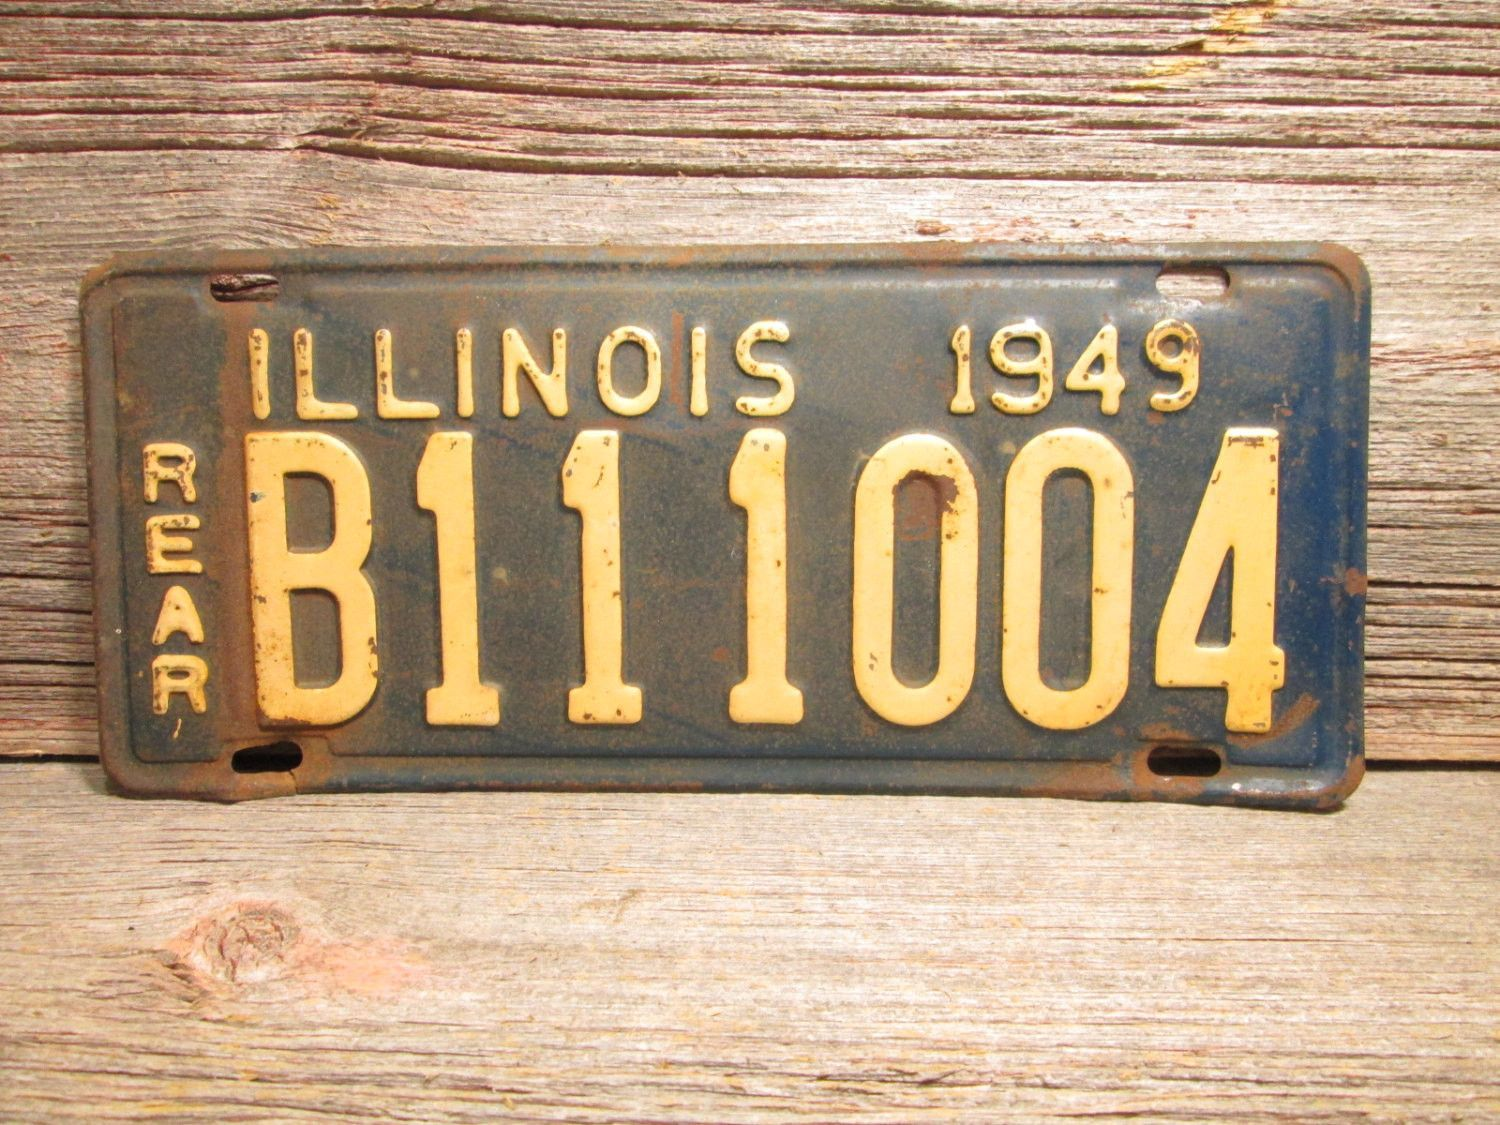 1949 Illinois License Plate Extra Long B111004 Vintage Car Plate ...